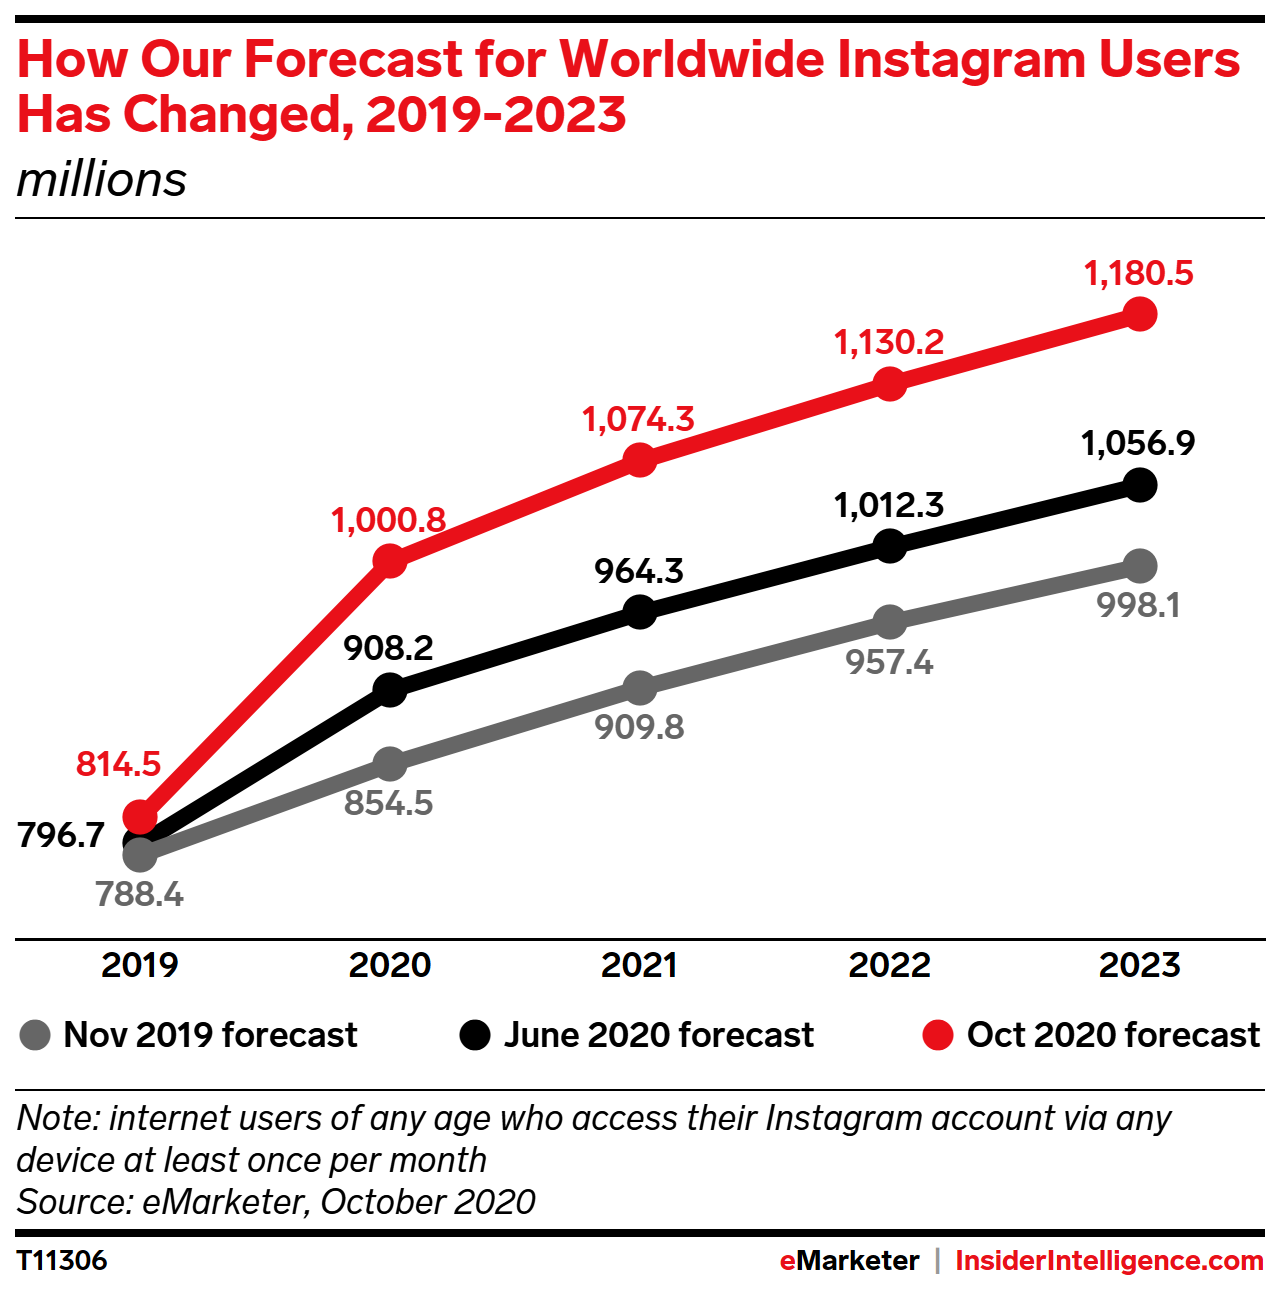 How Our Forecast for Instagram Users Worldwide Has Changed, 2019-2023 (millions)